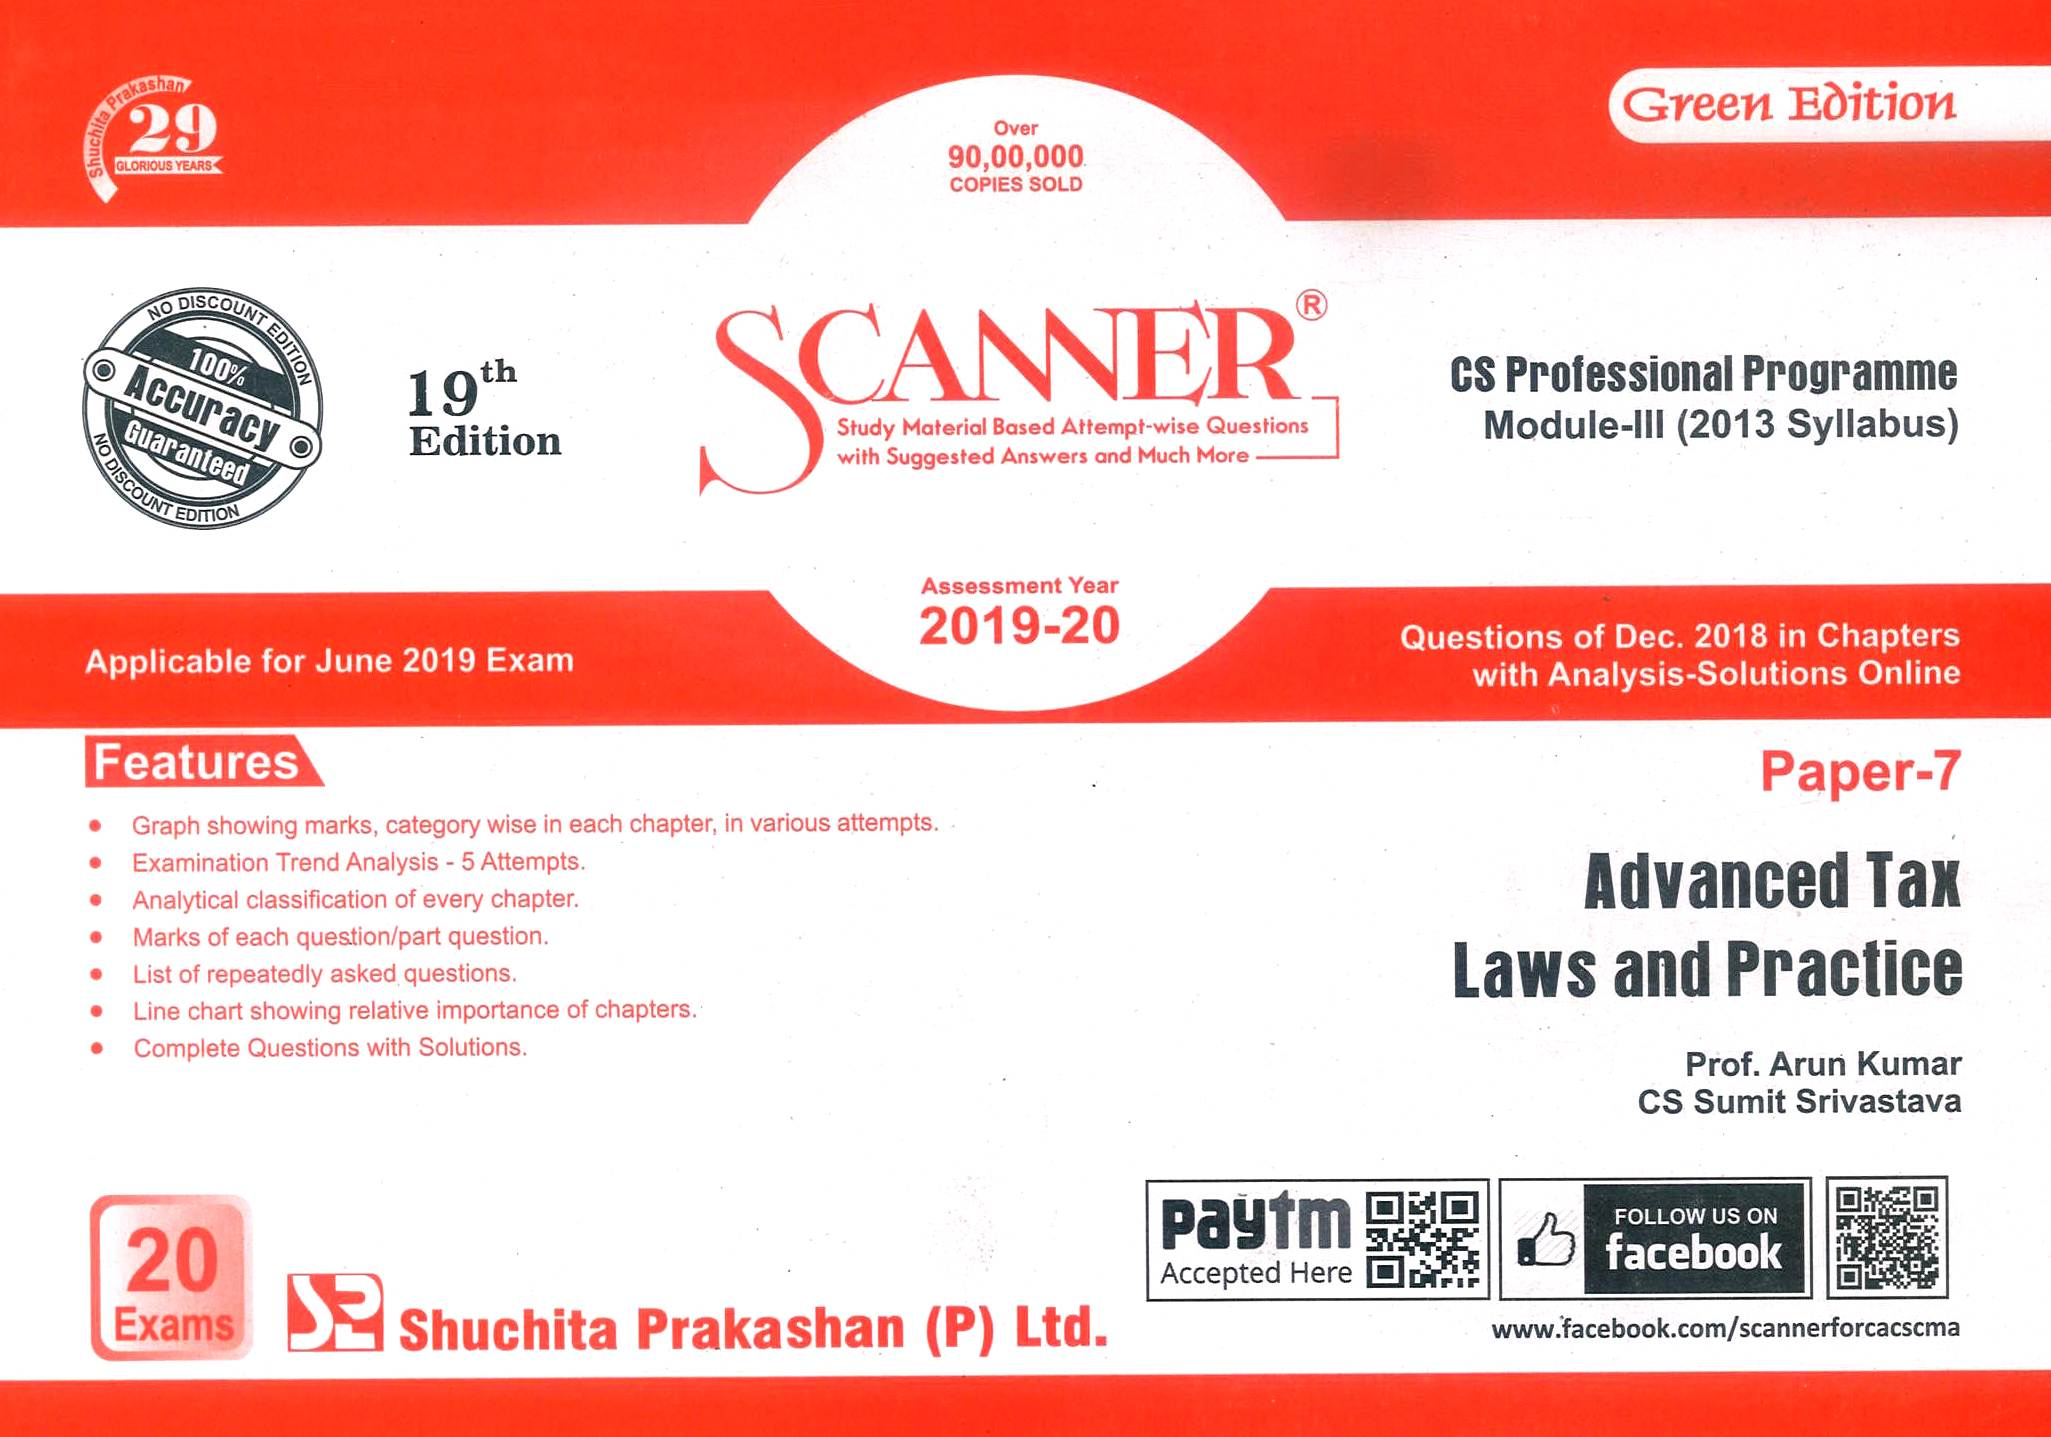 Shuchita Solved Scanner Advanced Tax Laws and Practice  for CS Professional Programme Paper 7 Module-I Questions June 2019 in Chapters with Analysis-Solutions online by Prof. Arun Kumar and CS (Dr.) Himanshu Srivastava for June 2019 (Shuchita Prakashan) Edition 19th 2019